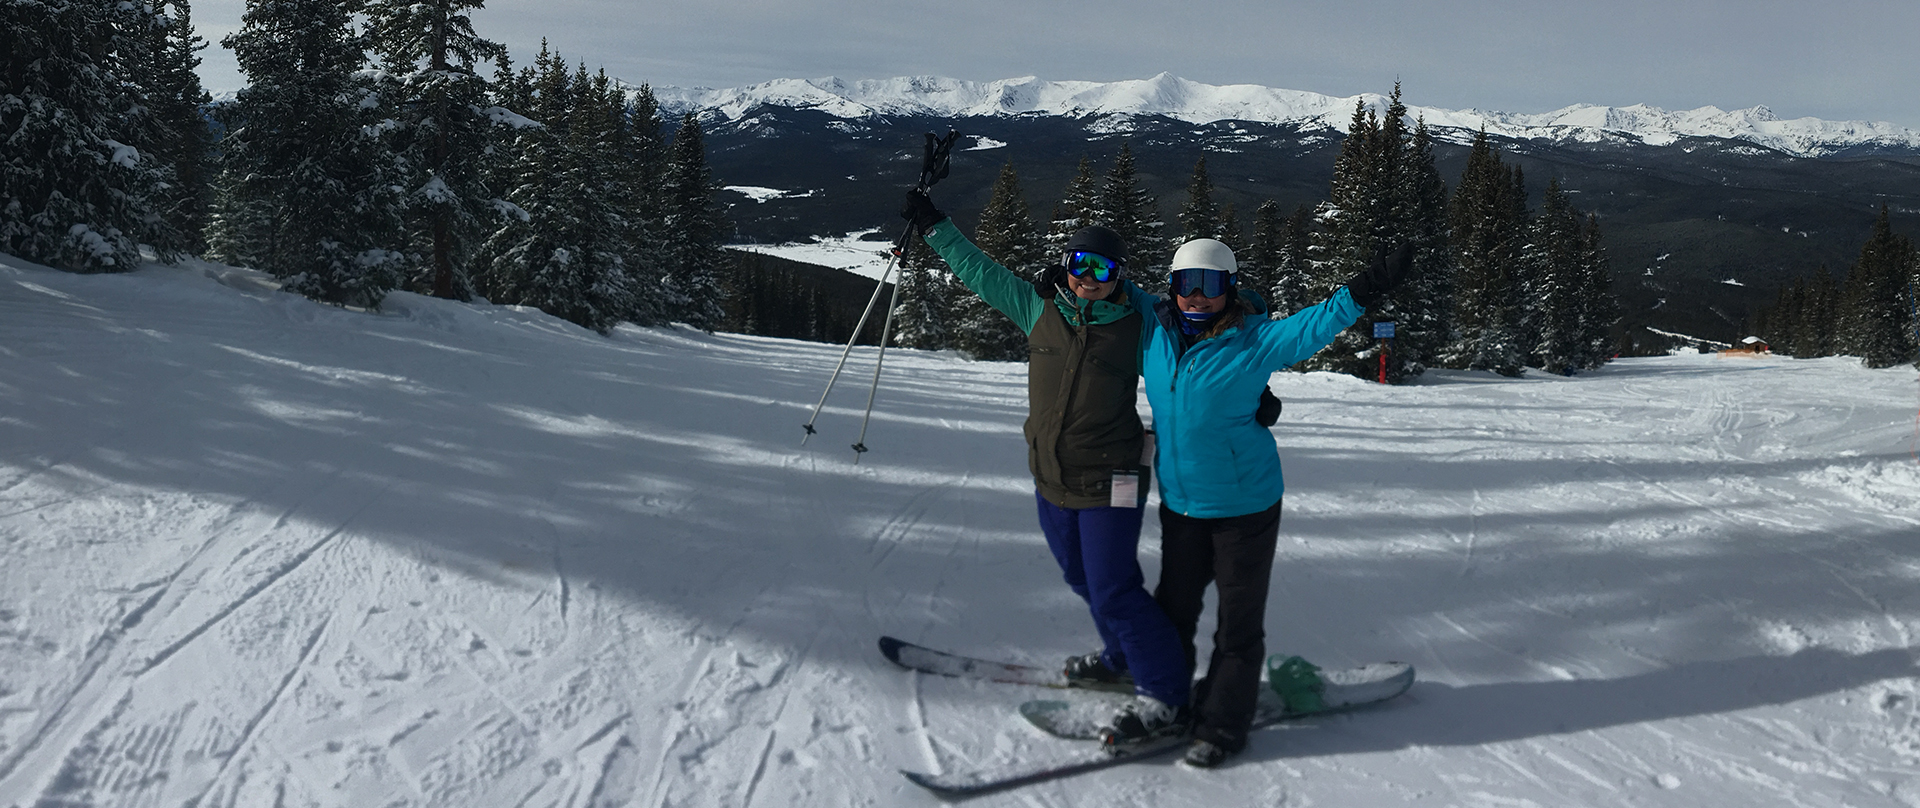 2 people posing on the top of a ski trail